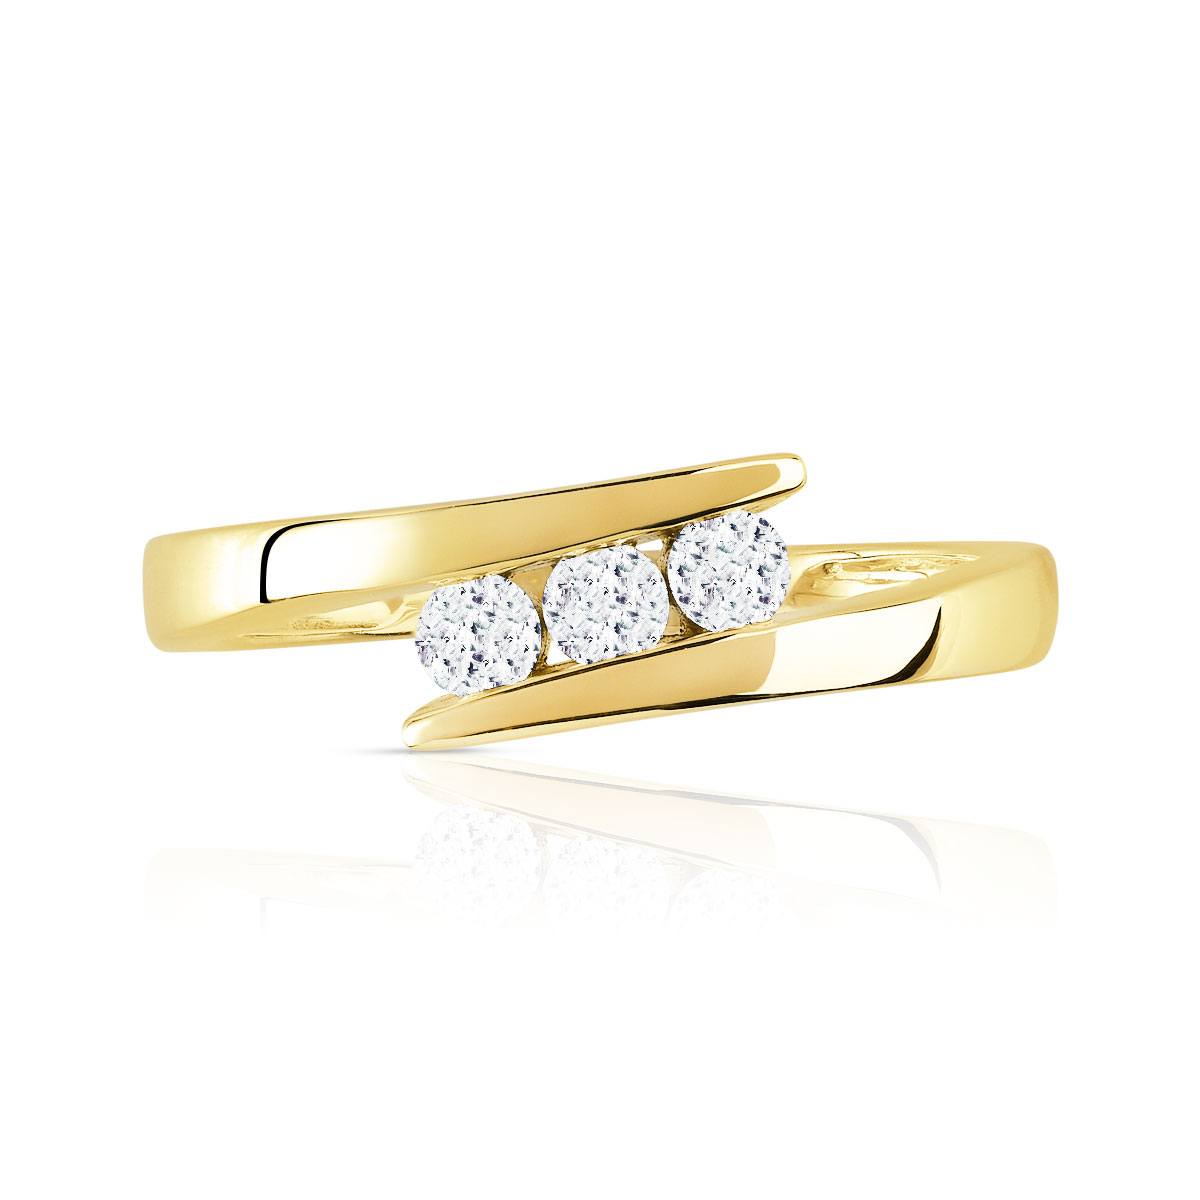 Bague Trilogy or 750 jaune diamant - vue 3